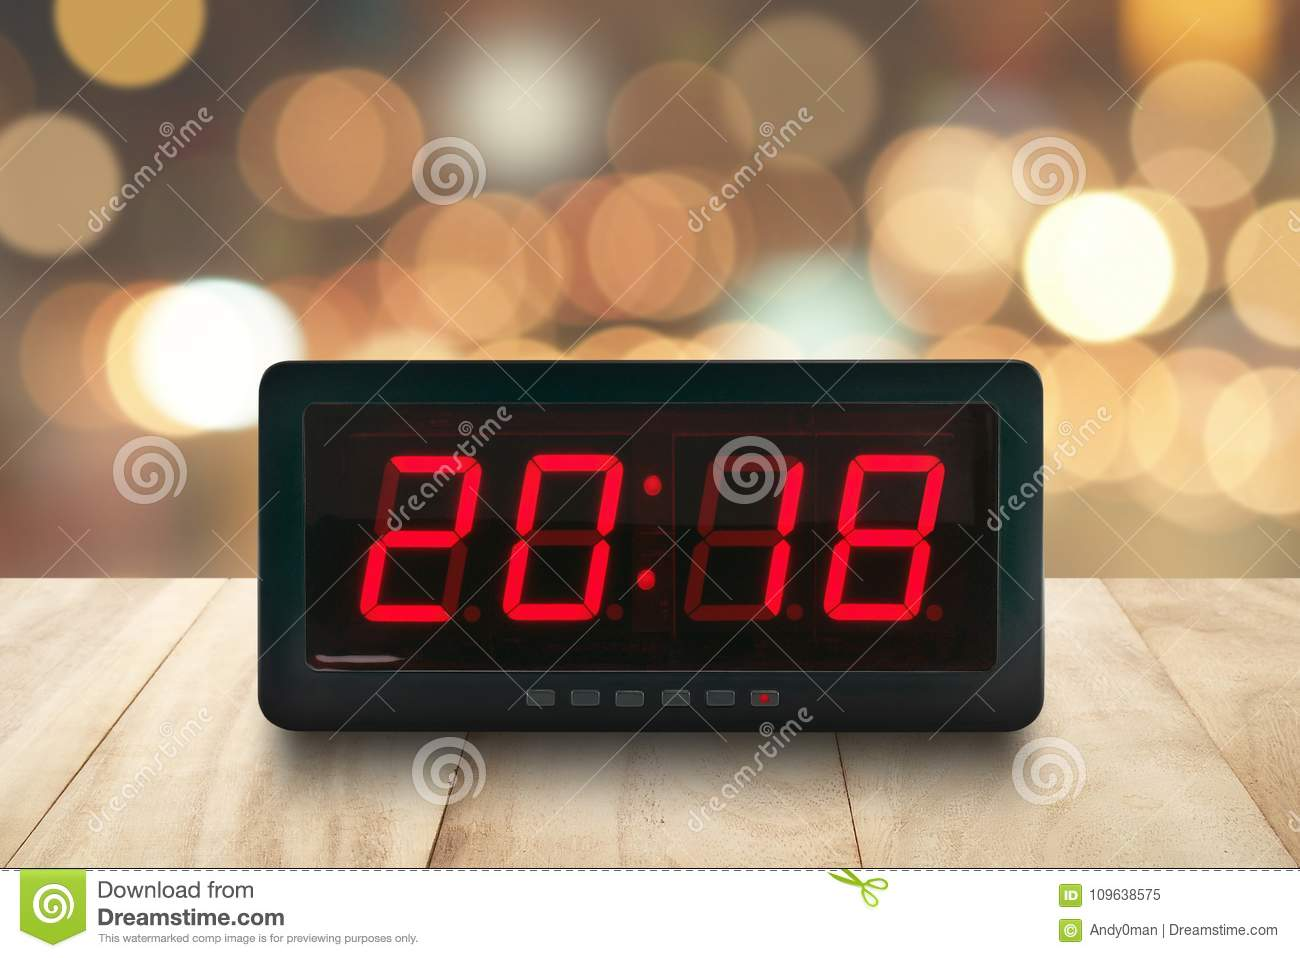 Red Led Light Illuminated Numbers 2018 On Digital Electric Alarm Clock Face  On Brown Wooden Table